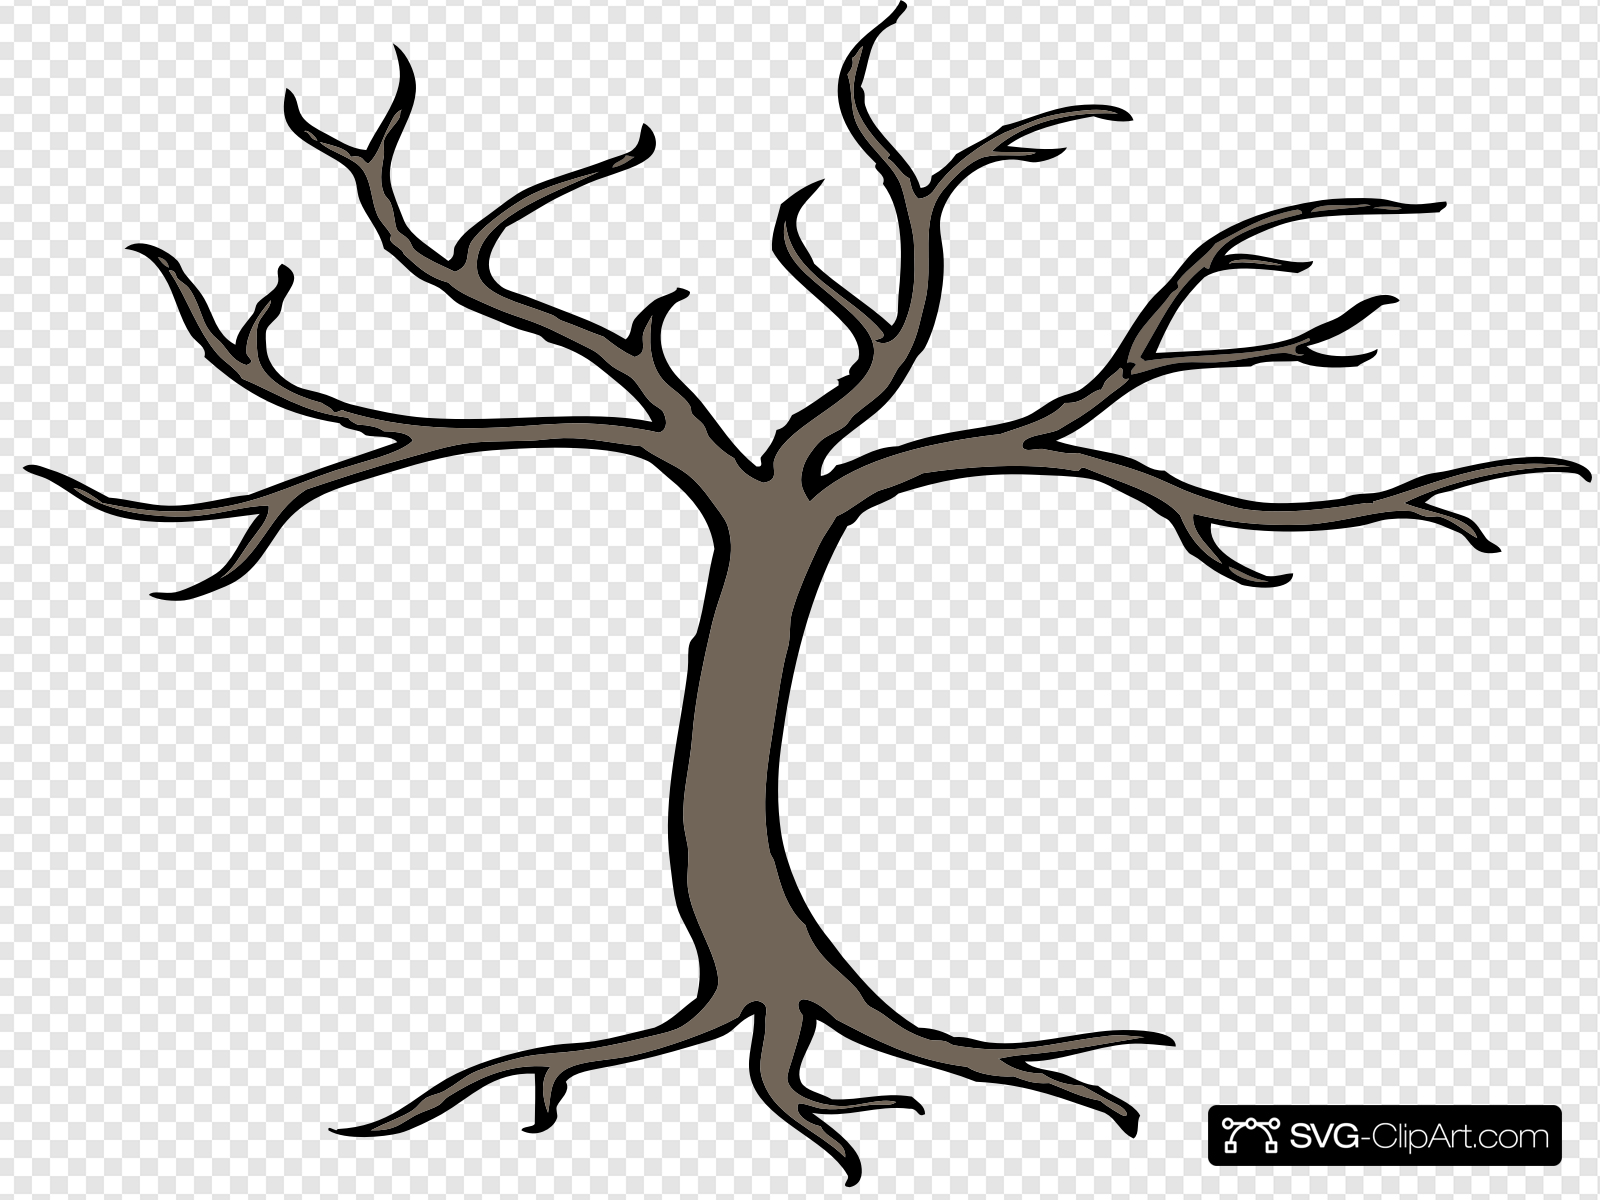 Tree with branches clip. 3 clipart branch